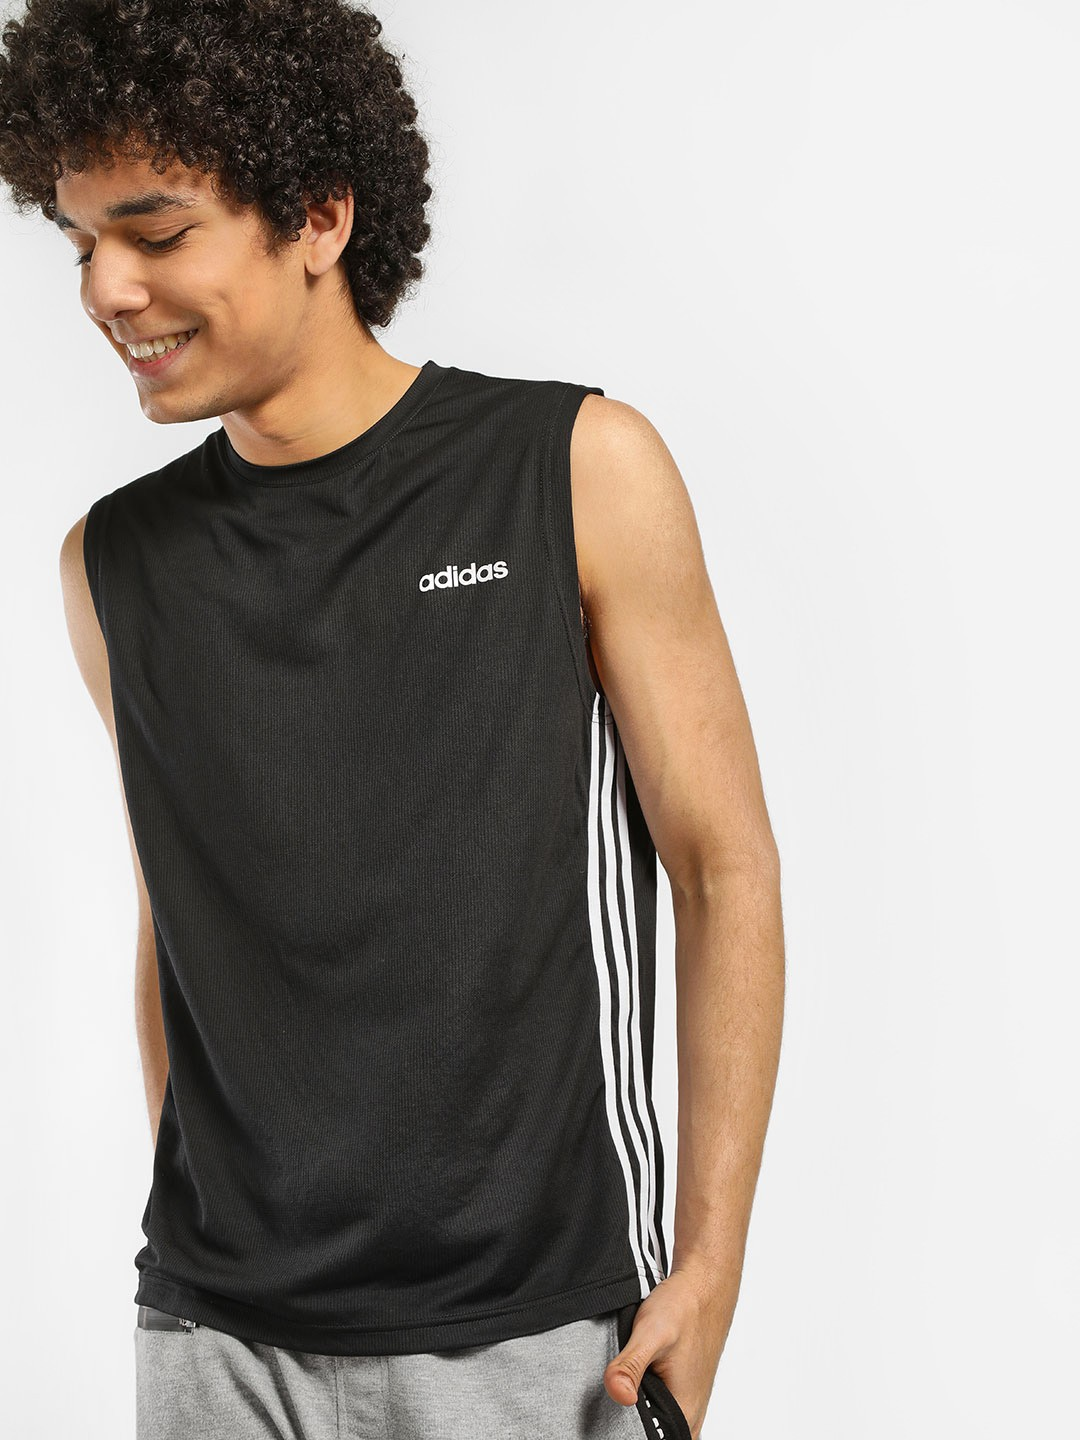 Adidas Black Design 2 Move 3 Stripes Vest 1